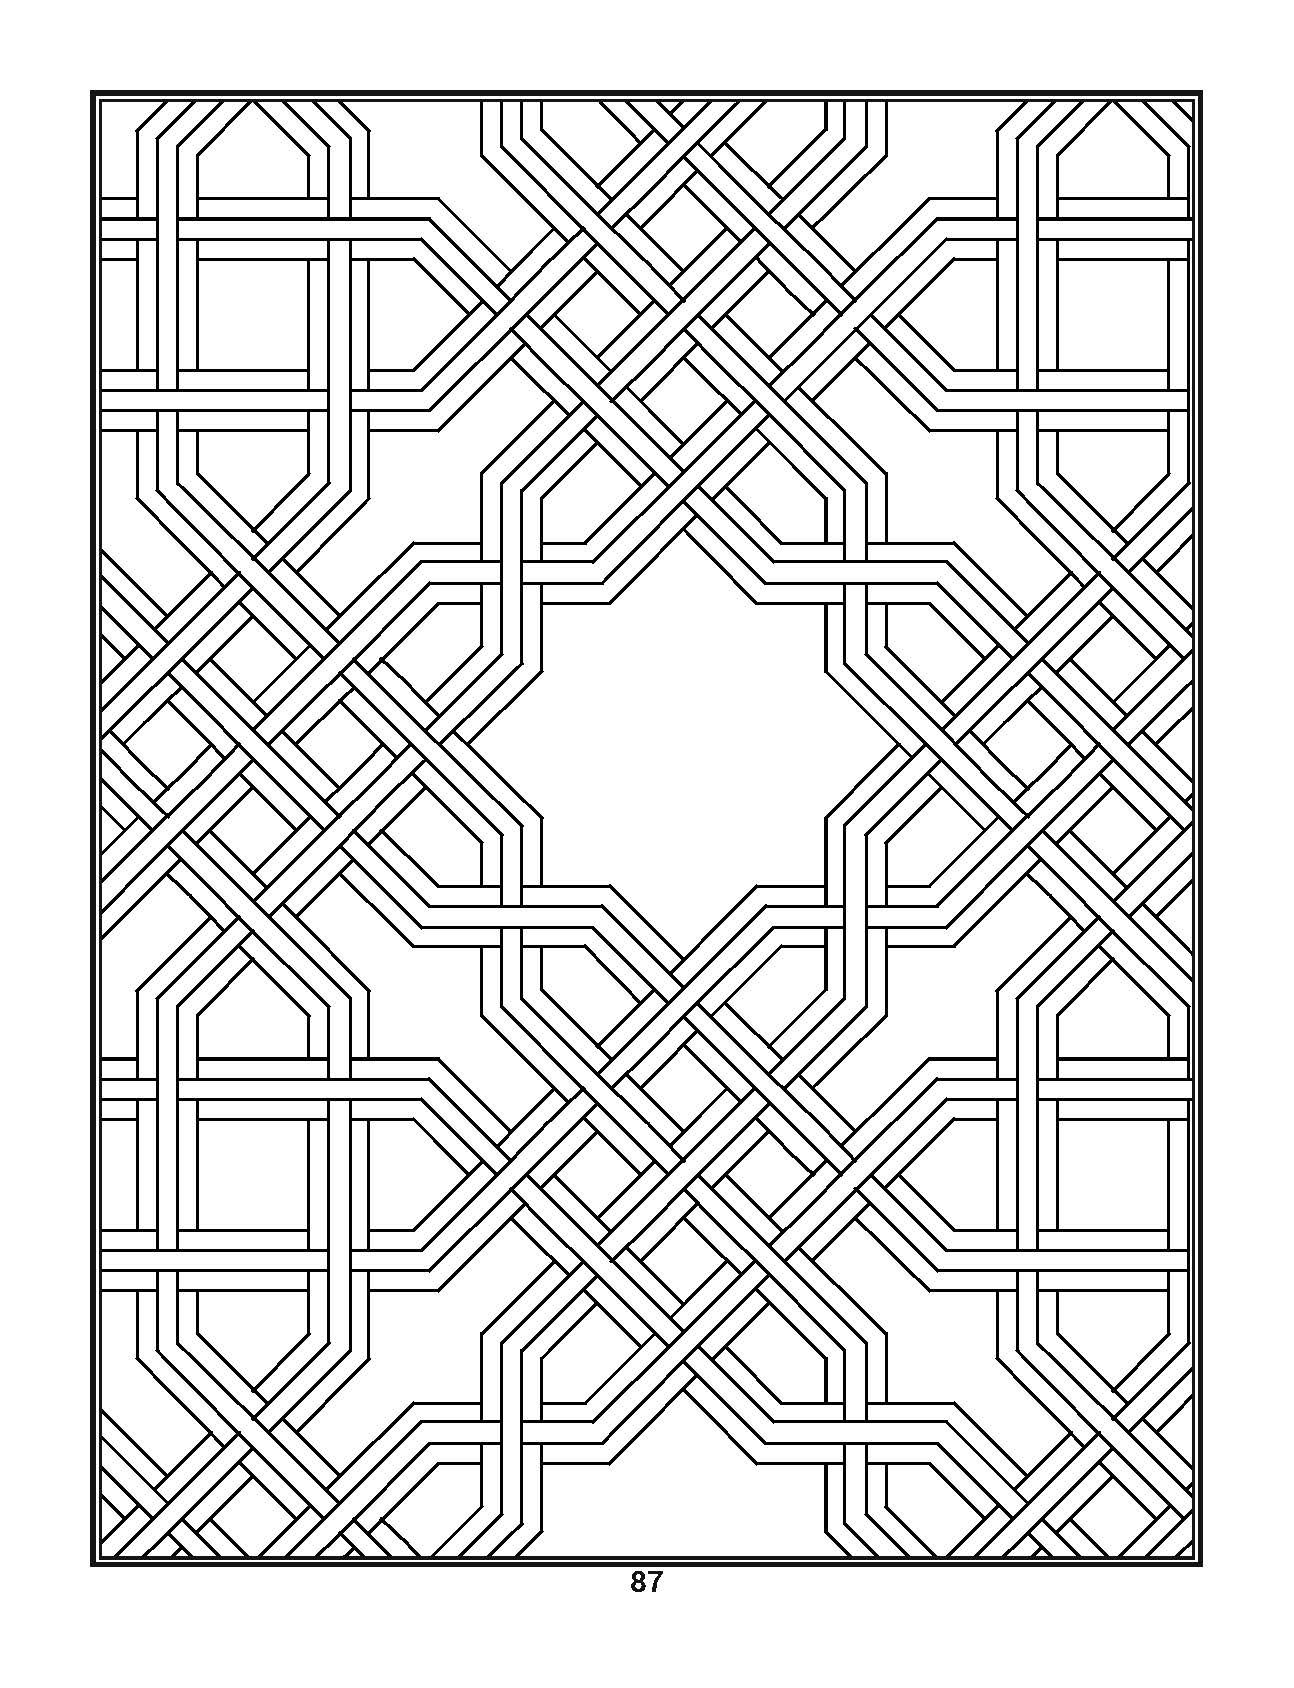 Pin On Adult Coloring Book Geometric Stress Relieving Drawings And Patterns 1 Geometric Coloring Book Series